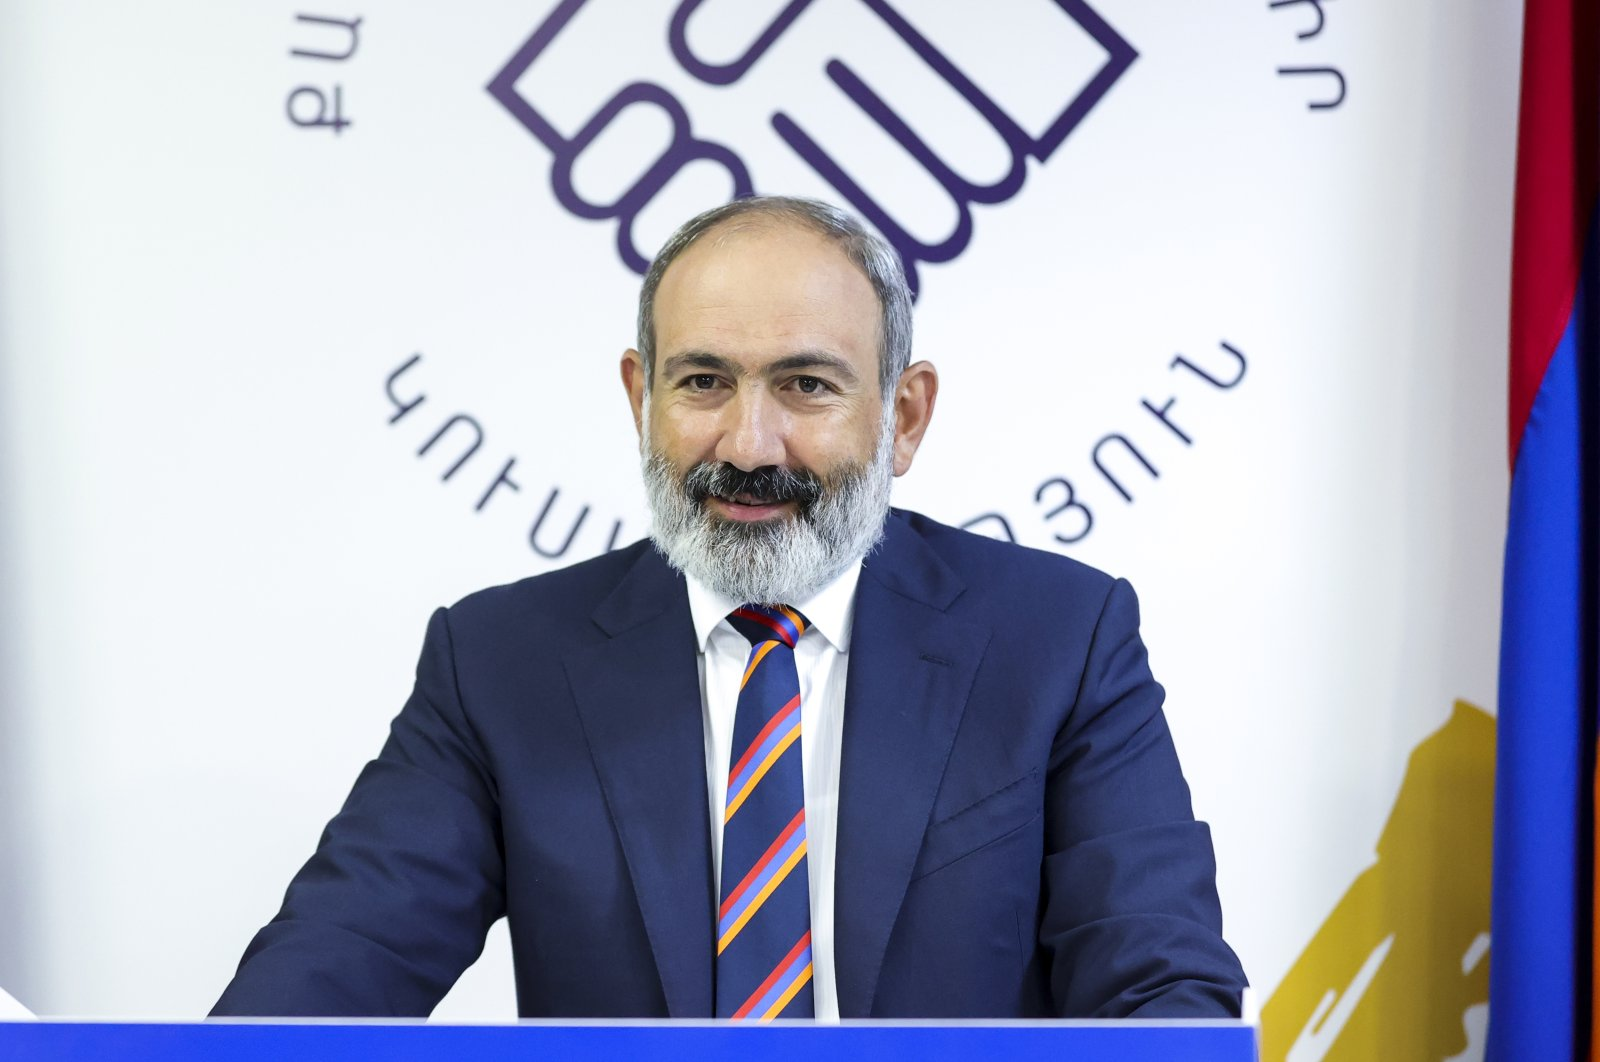 Armenian acting Prime Minister Nikol Pashinian speaks to his party colleagues after parliamentary elections in Yerevan, Armenia, June 21, 2021. (AP Photo)